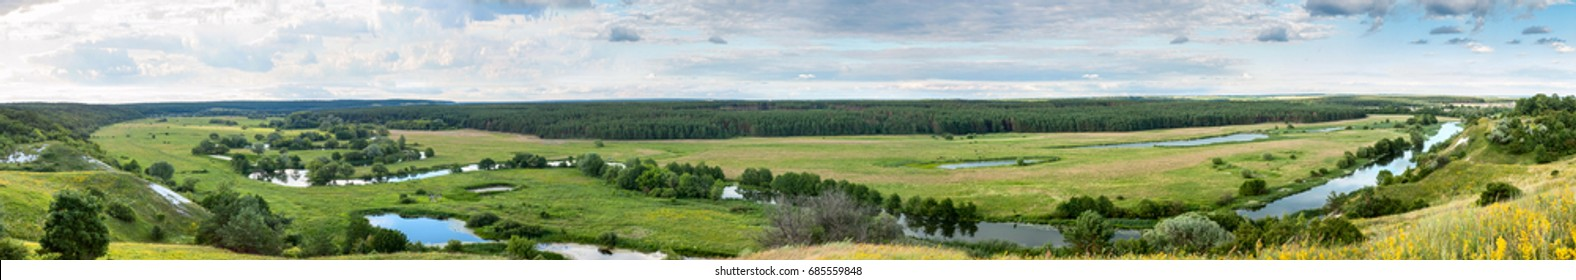 Summertime landscape banner, panorama - river valley of the Siverskyi (Seversky) Donets, the winding river over the meadows between hills and forests, border region of Ukraine near to Russia